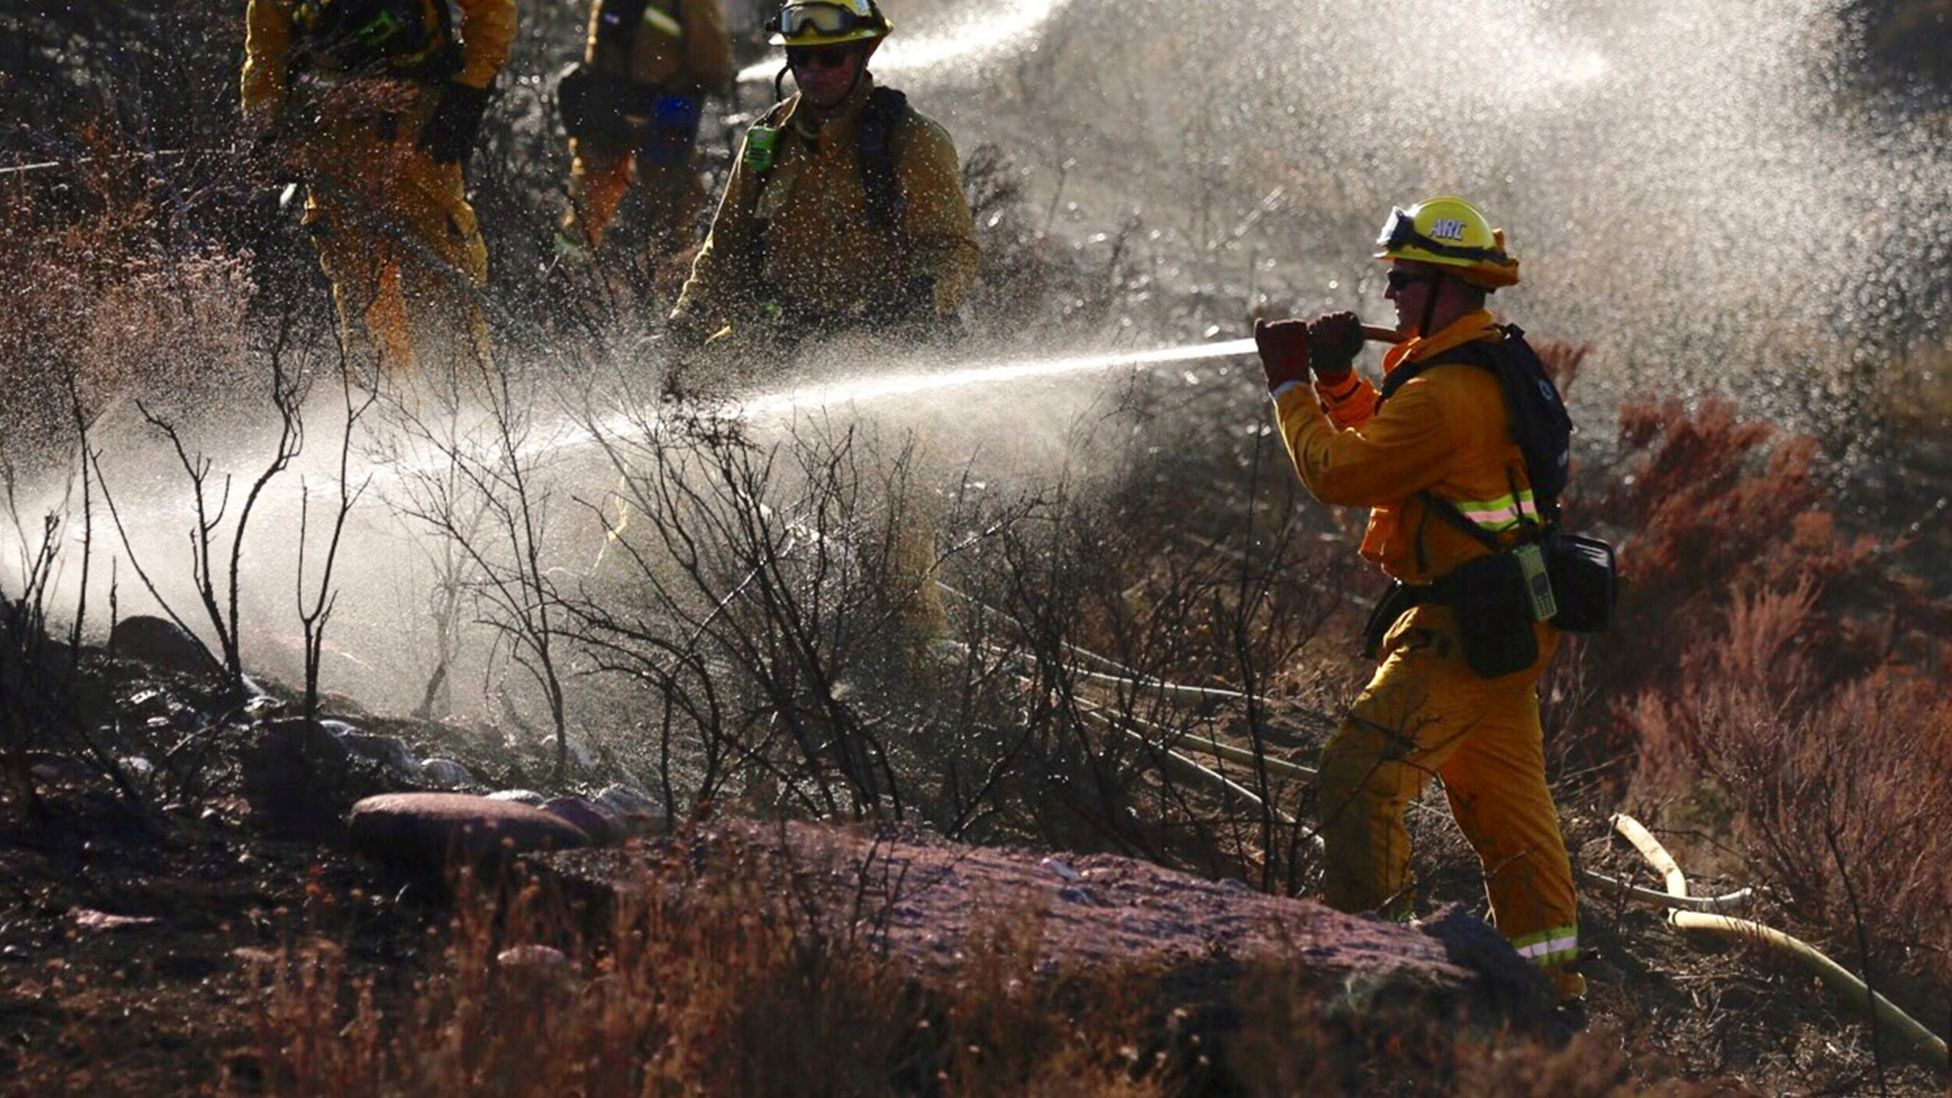 Crews battling 870-acre fire in Santa Clarita will face 30-mph winds and triple-digit heat, forecast says